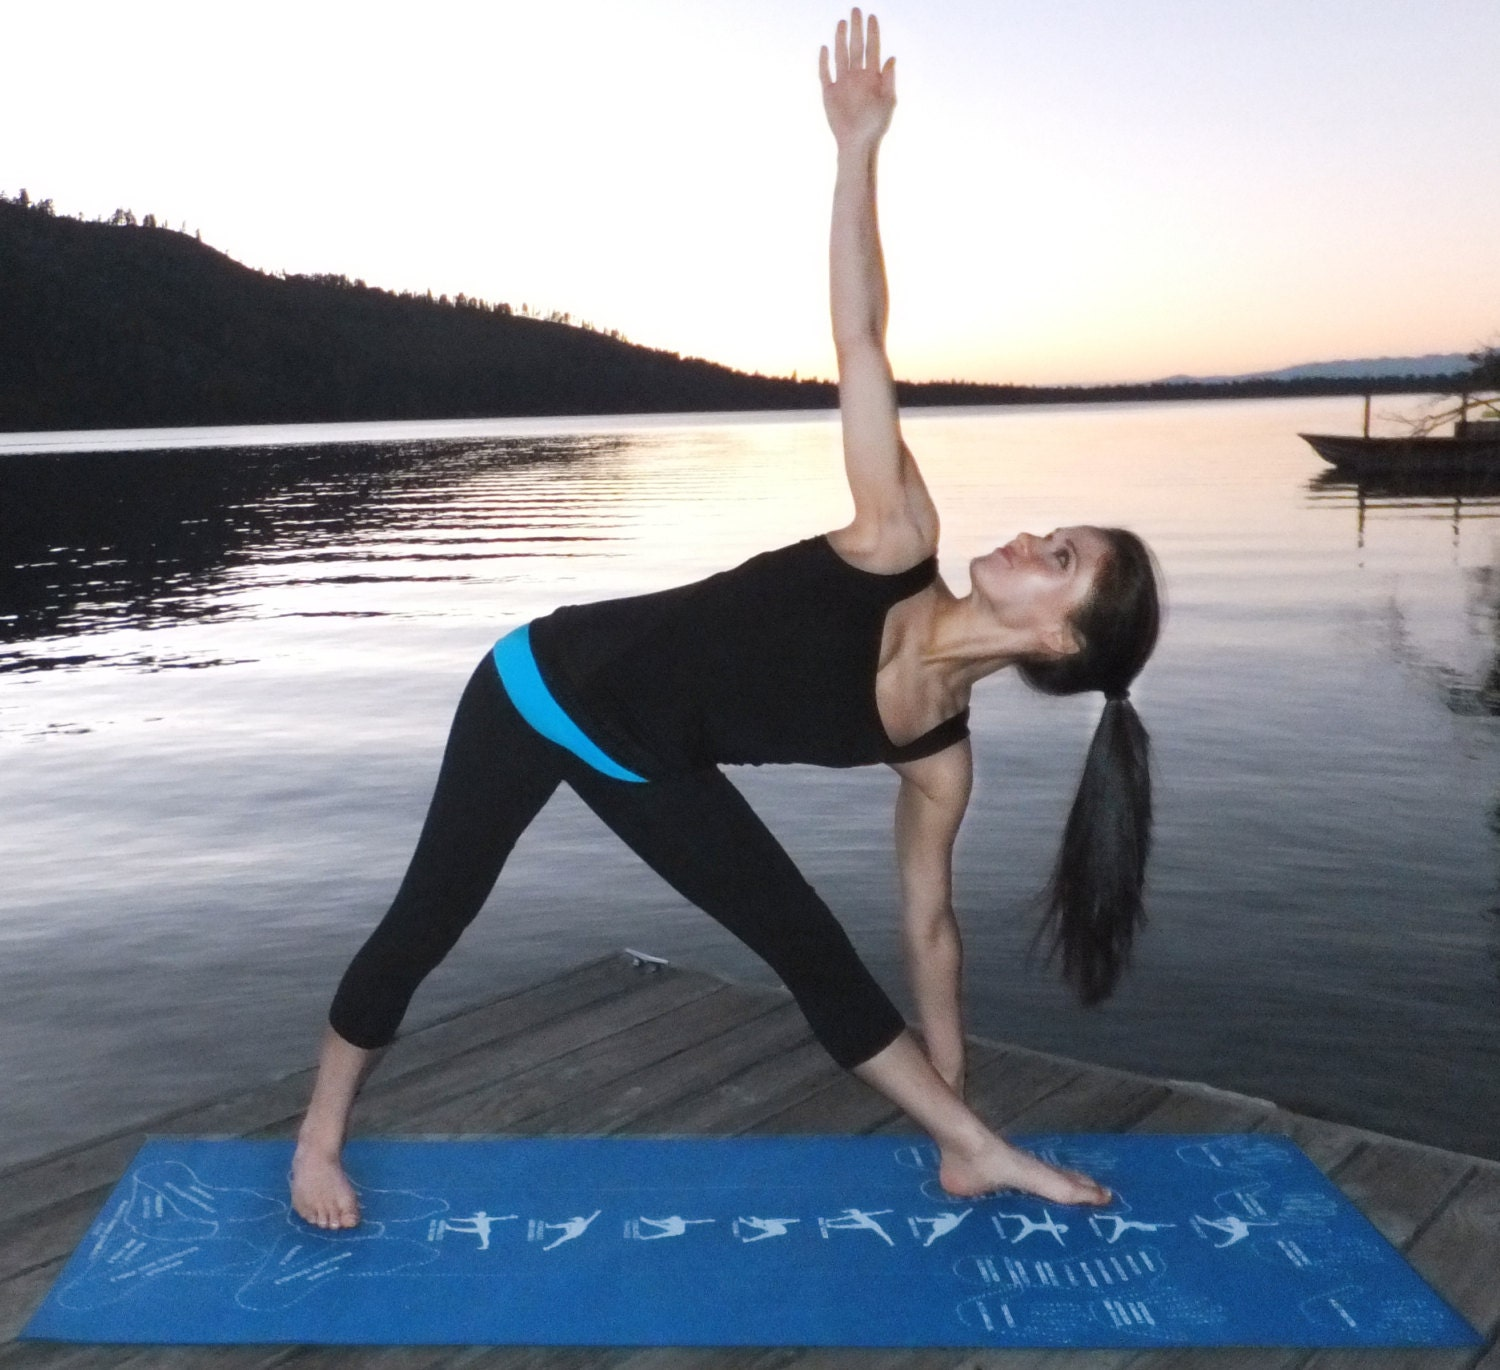 Instructional Yoga Mat / Alignment Yoga Mat With Hand And Foot